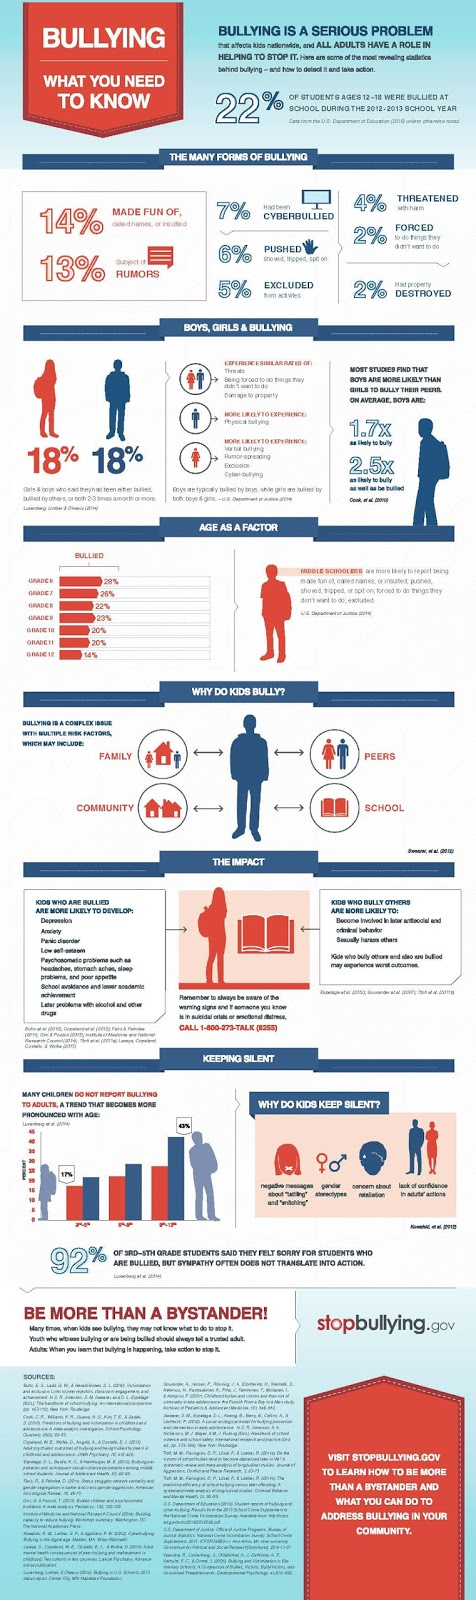 https://www.stopbullying.gov/image-gallery/what-you-need-to-know-infographic.html